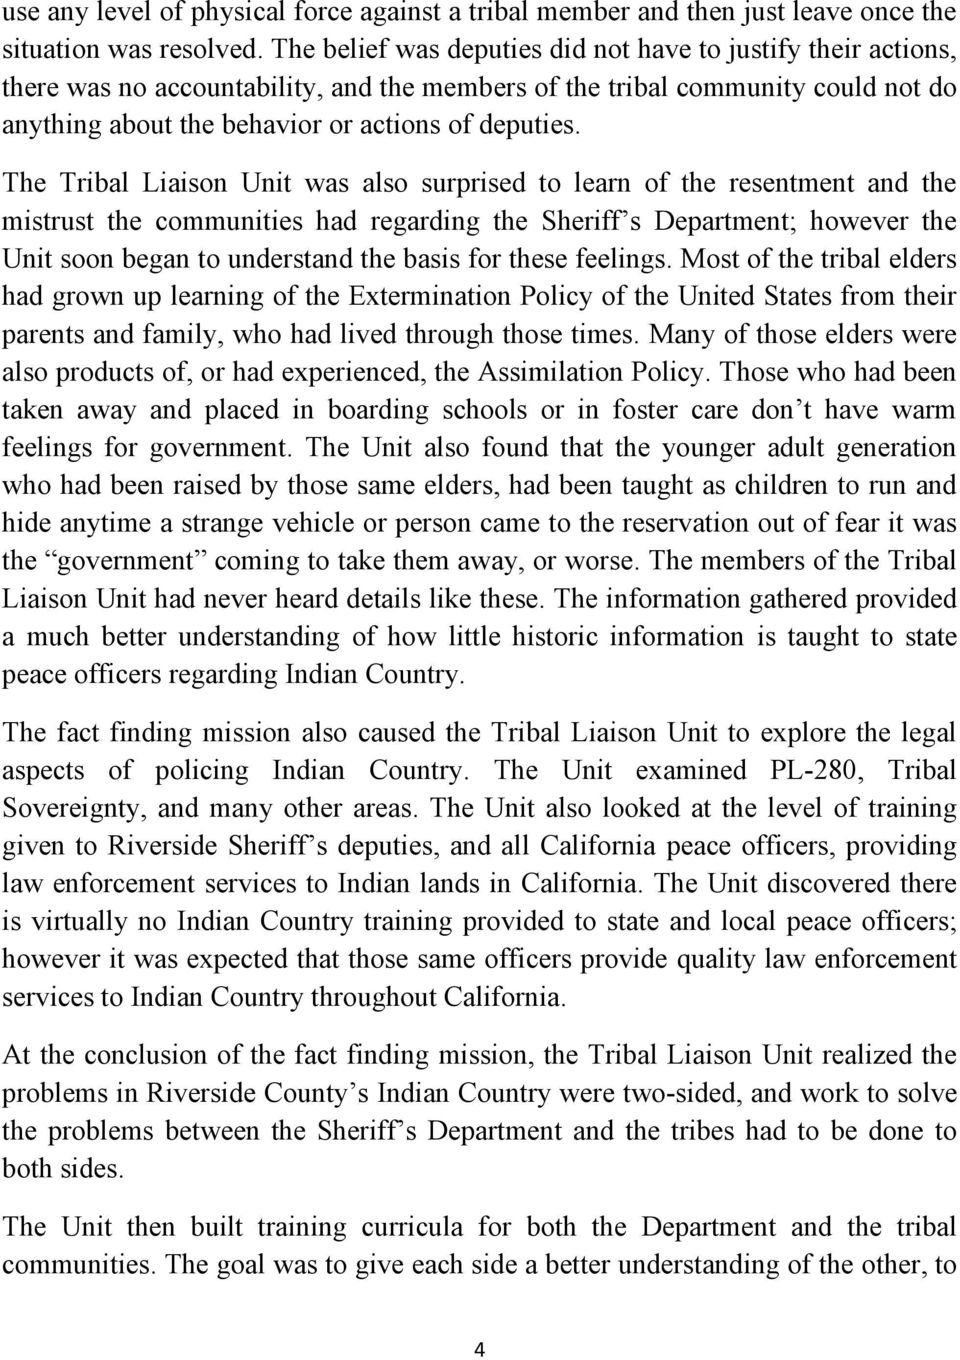 The Tribal Liaison Unit was also surprised to learn of the resentment and the mistrust the communities had regarding the Sheriff s Department; however the Unit soon began to understand the basis for